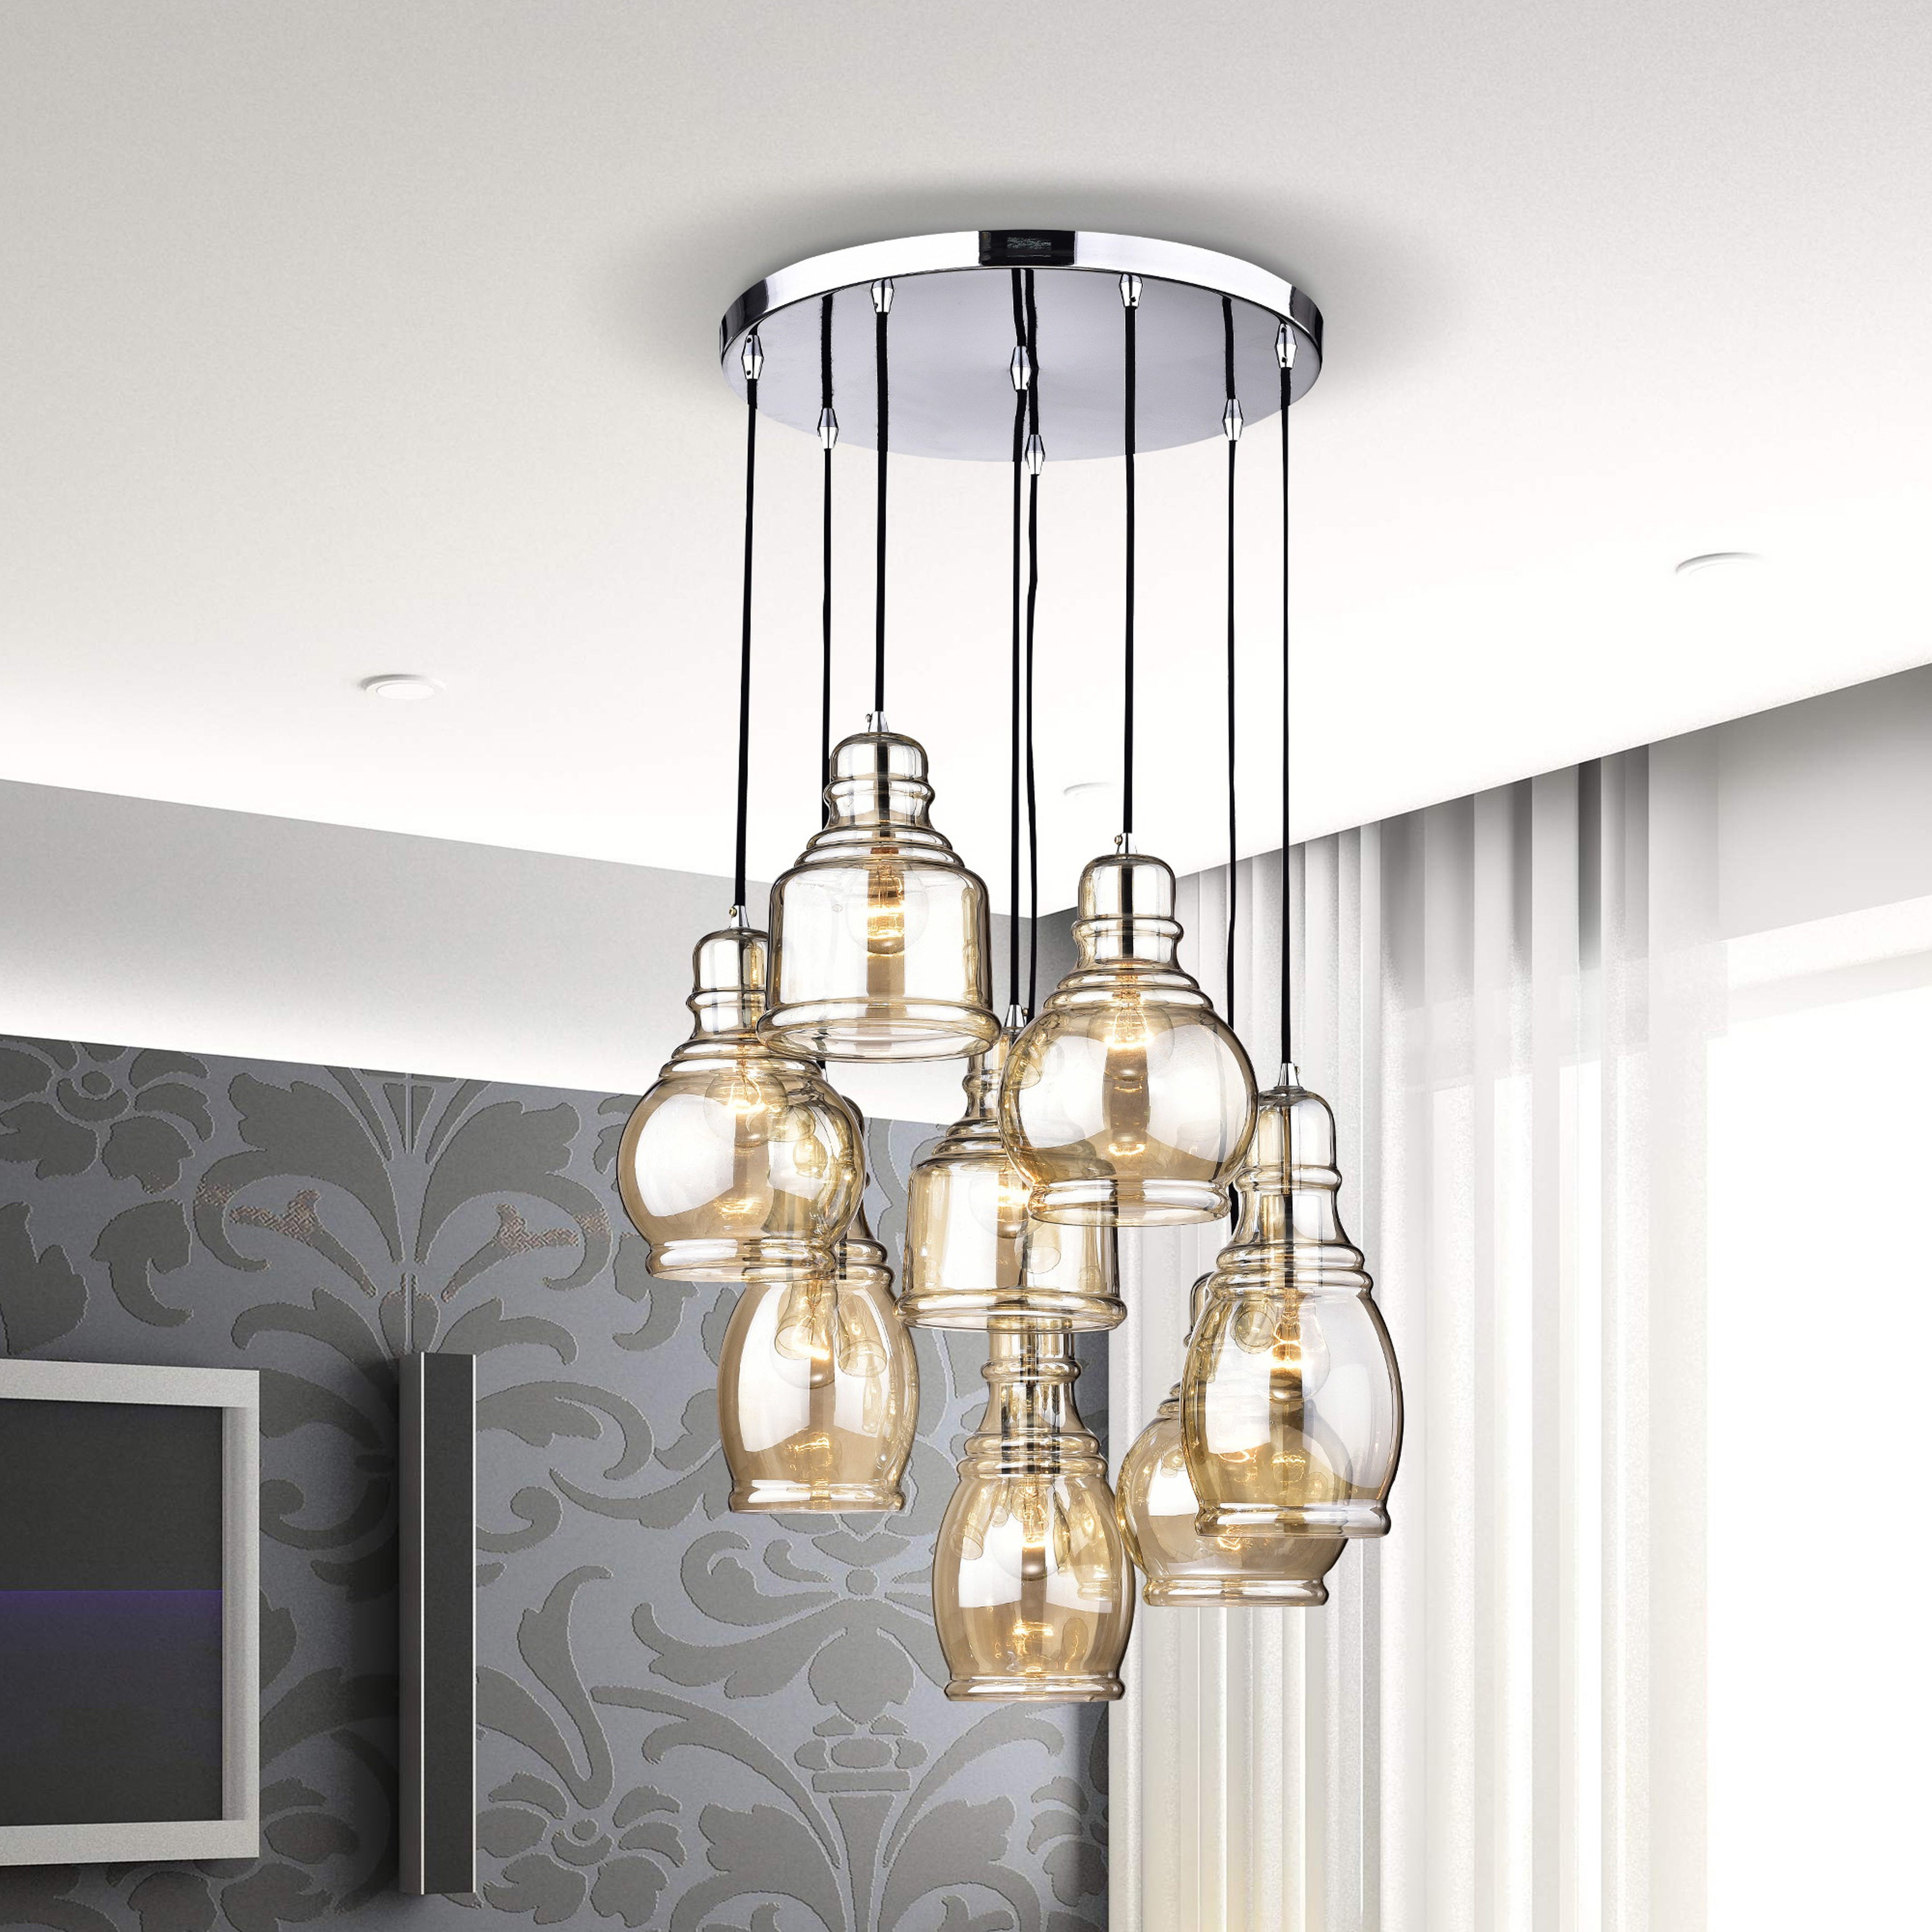 Famous Pruett Cognac Glass 8 Light Cluster Pendants Throughout Mariana 8 Light Cognac Glass Cluster Pendant Chandelier With Chrome Finish  And Round Base (View 3 of 20)